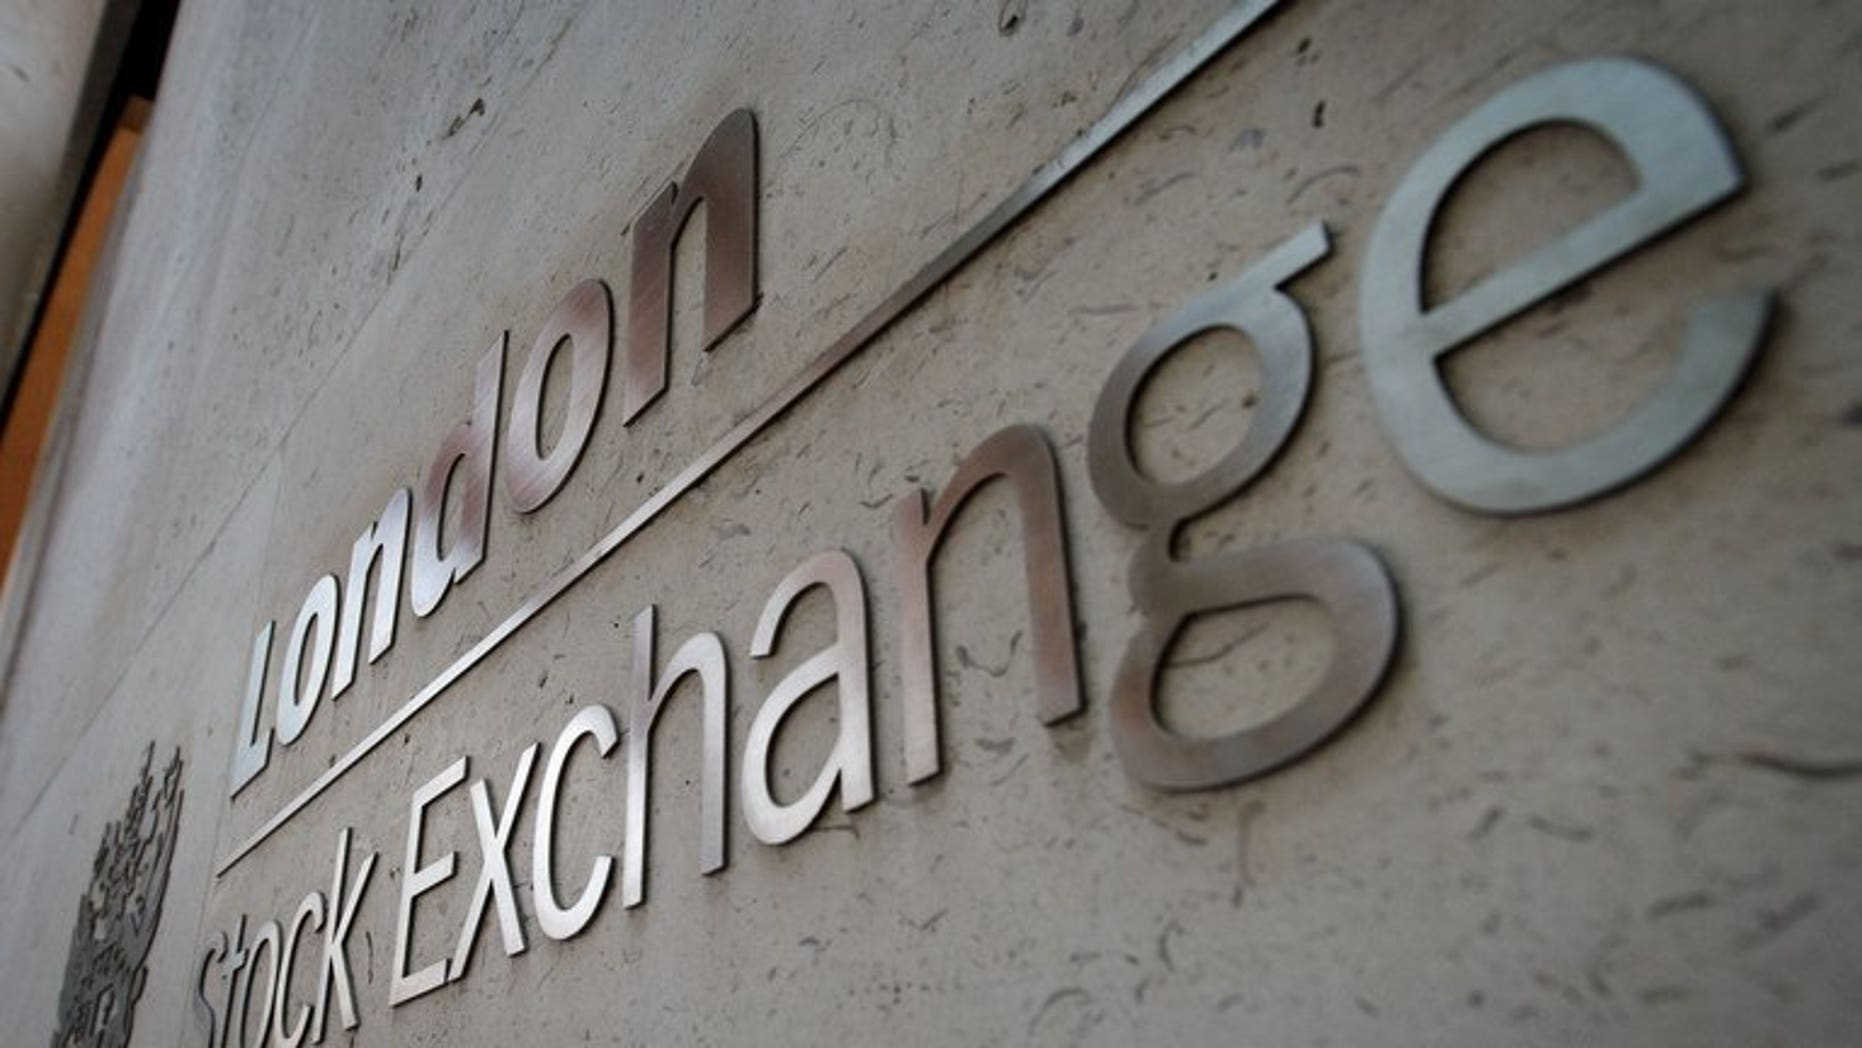 The London Stock Exchange building in central London, pictured on March 7, 2013. London equities rose at the start of trading on Monday, mirroring the picture across most Asian indices following in-line Chinese economic growth data.